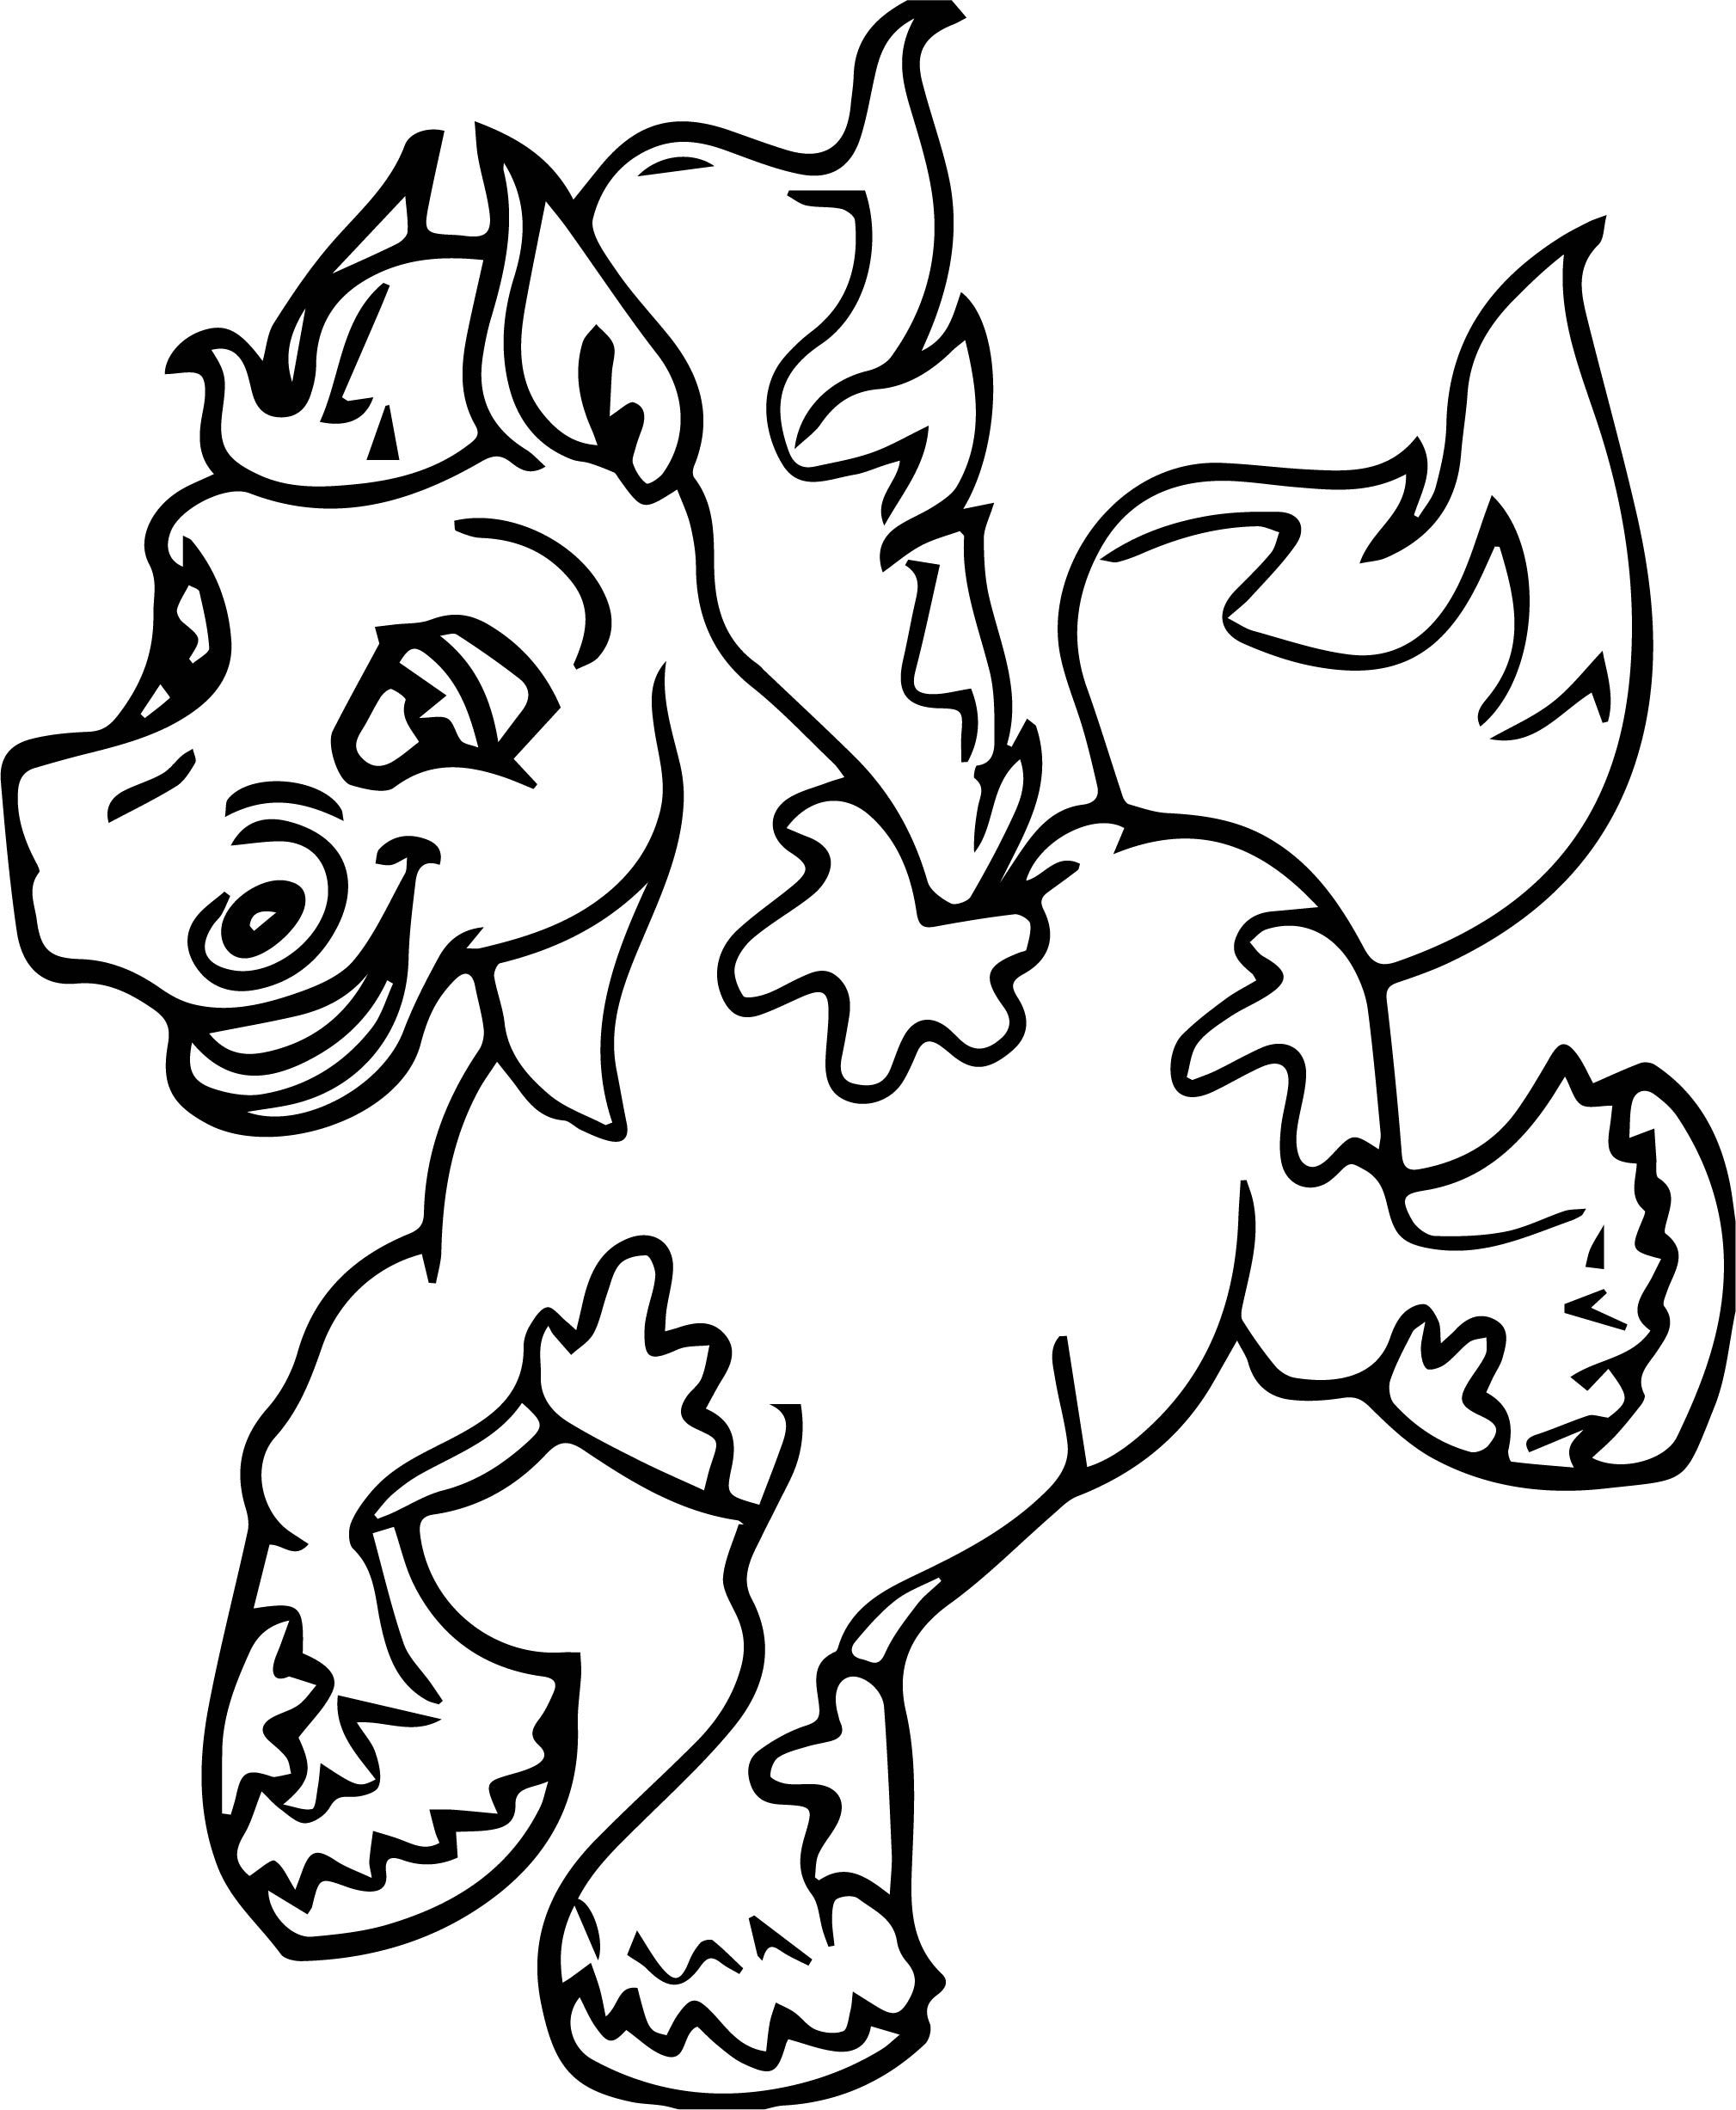 Cartoon Horse Coloring Page 41 Horse Coloring Pages Horse Coloring Dog Coloring Page